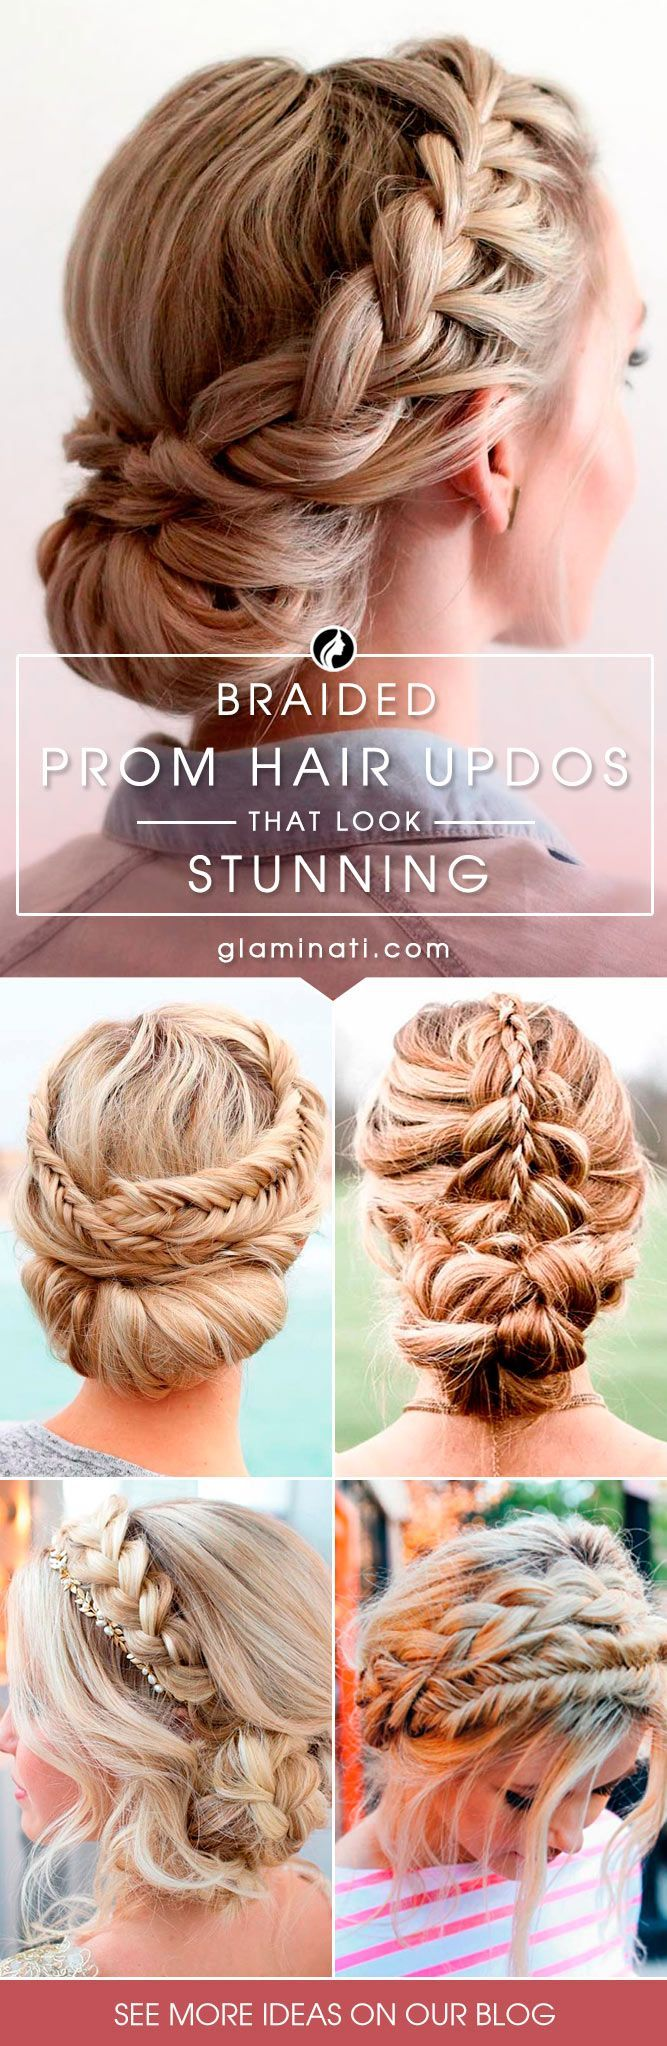 amazing updo ideas for women with short hair prom hair updos